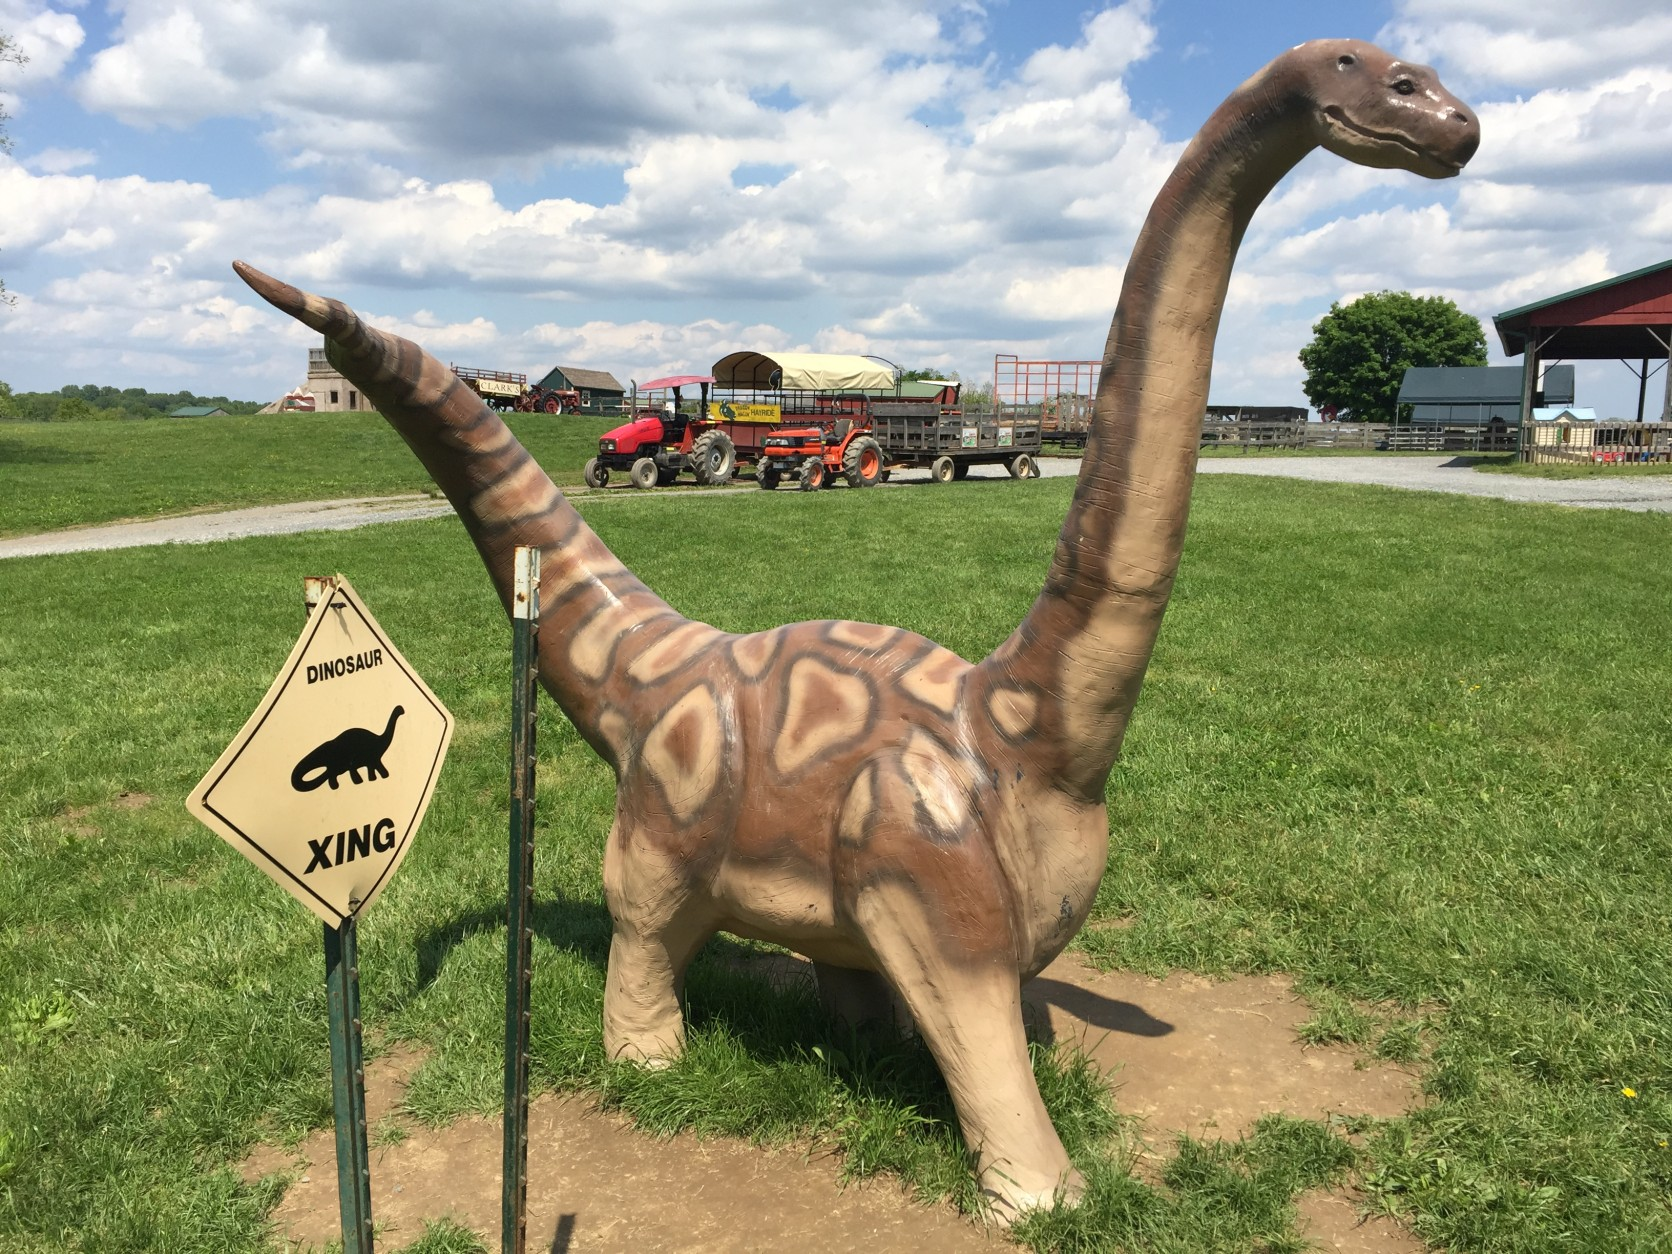 This happy dinosaur is one of the many other attractions at Clark's Elioak Farm. In the background is the farm's popular hayride. (WTOP/Michelle Basch)